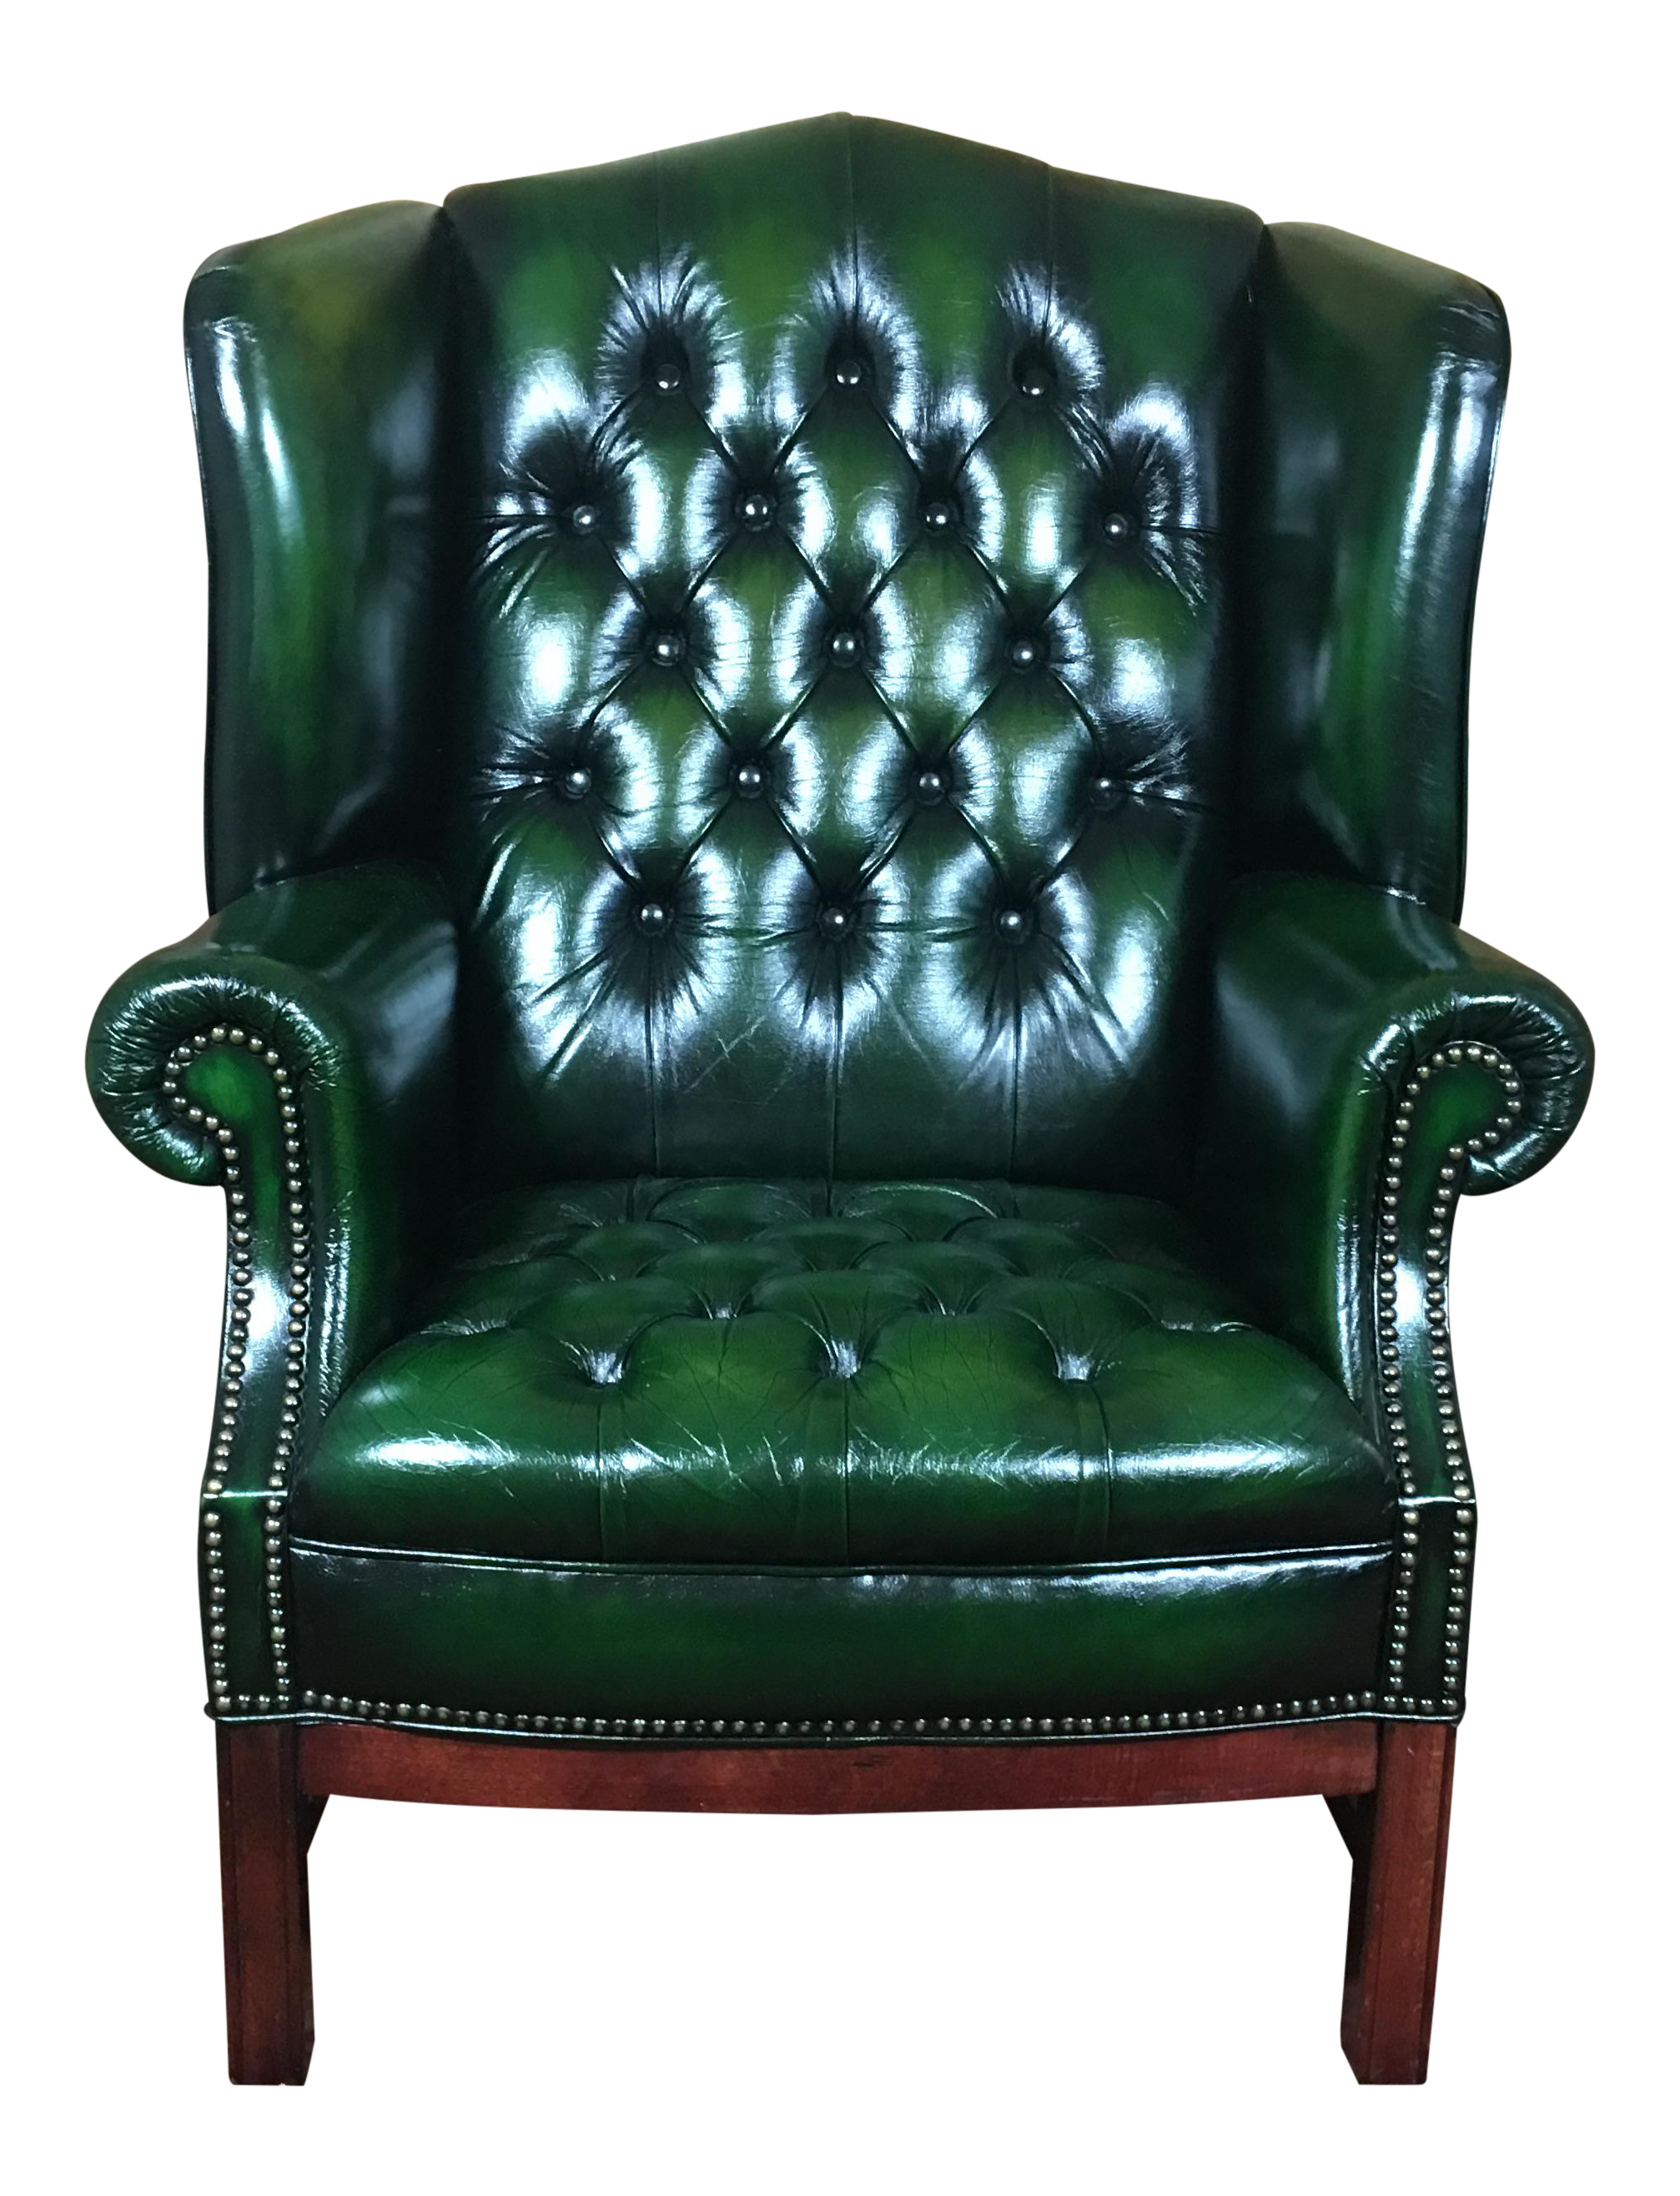 Sensational Vintage 20Th Century English Traditional Green Leather Tufted Wingback Chair Gmtry Best Dining Table And Chair Ideas Images Gmtryco